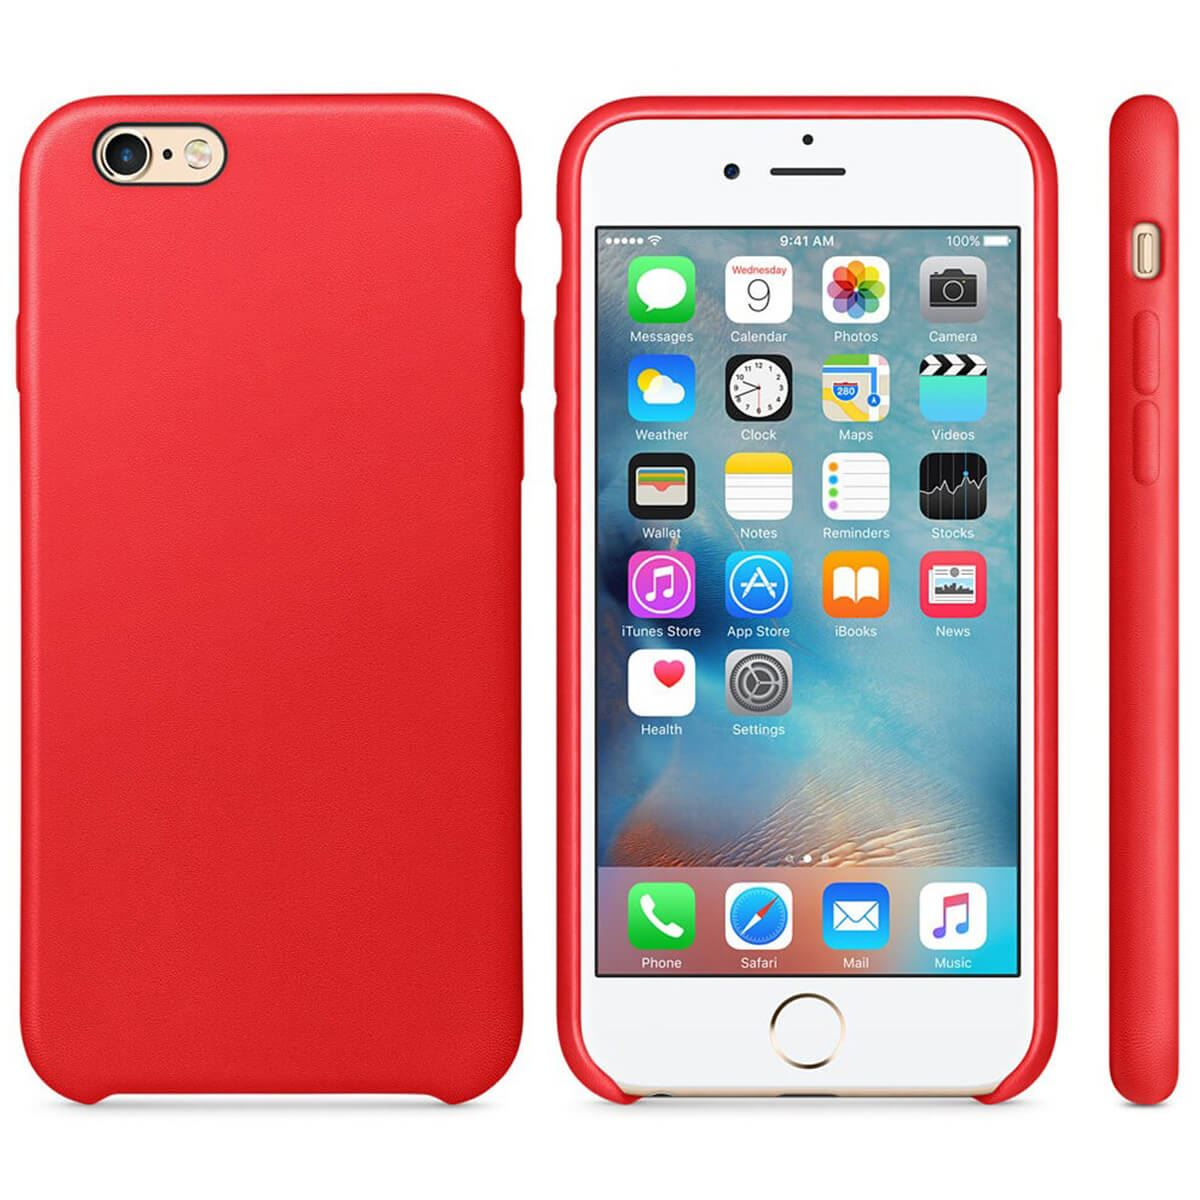 Liquid-Silicone-Shockproof-Case-For-Apple-iPhone-Soft-Matte-Back-Phone-Cover thumbnail 30